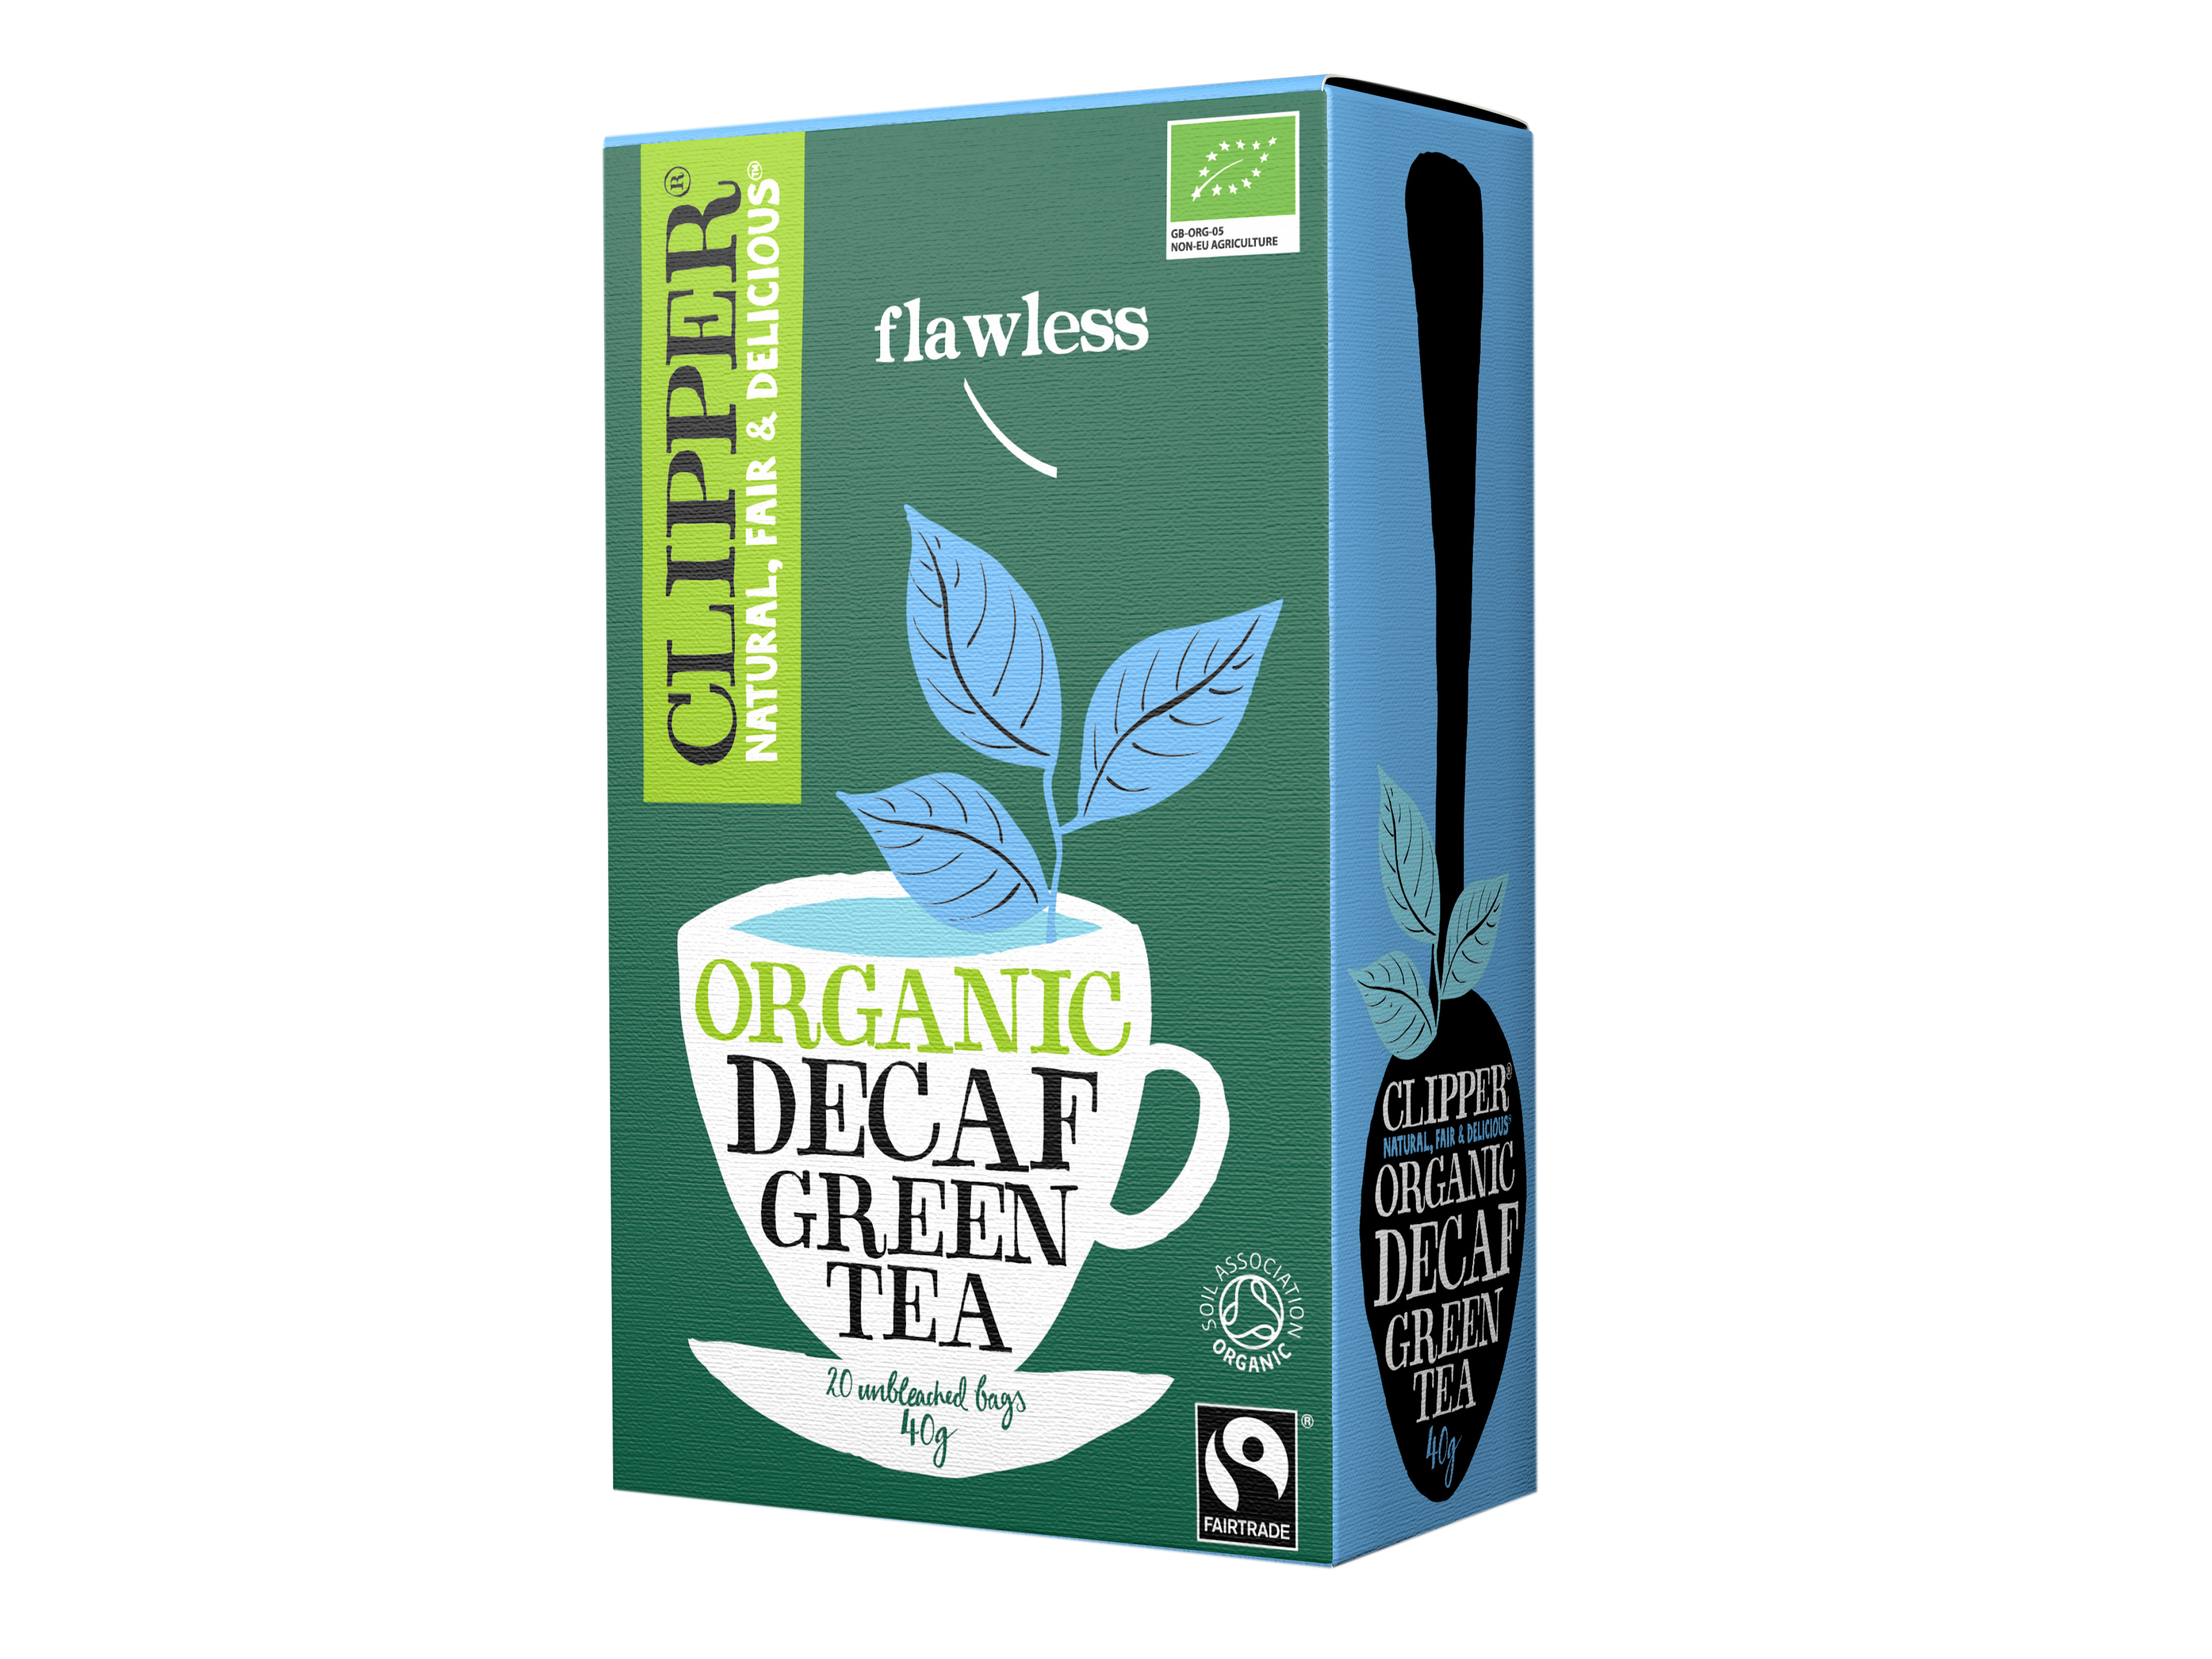 Clipper Decaf Green Tea, 20 poser økologisk te